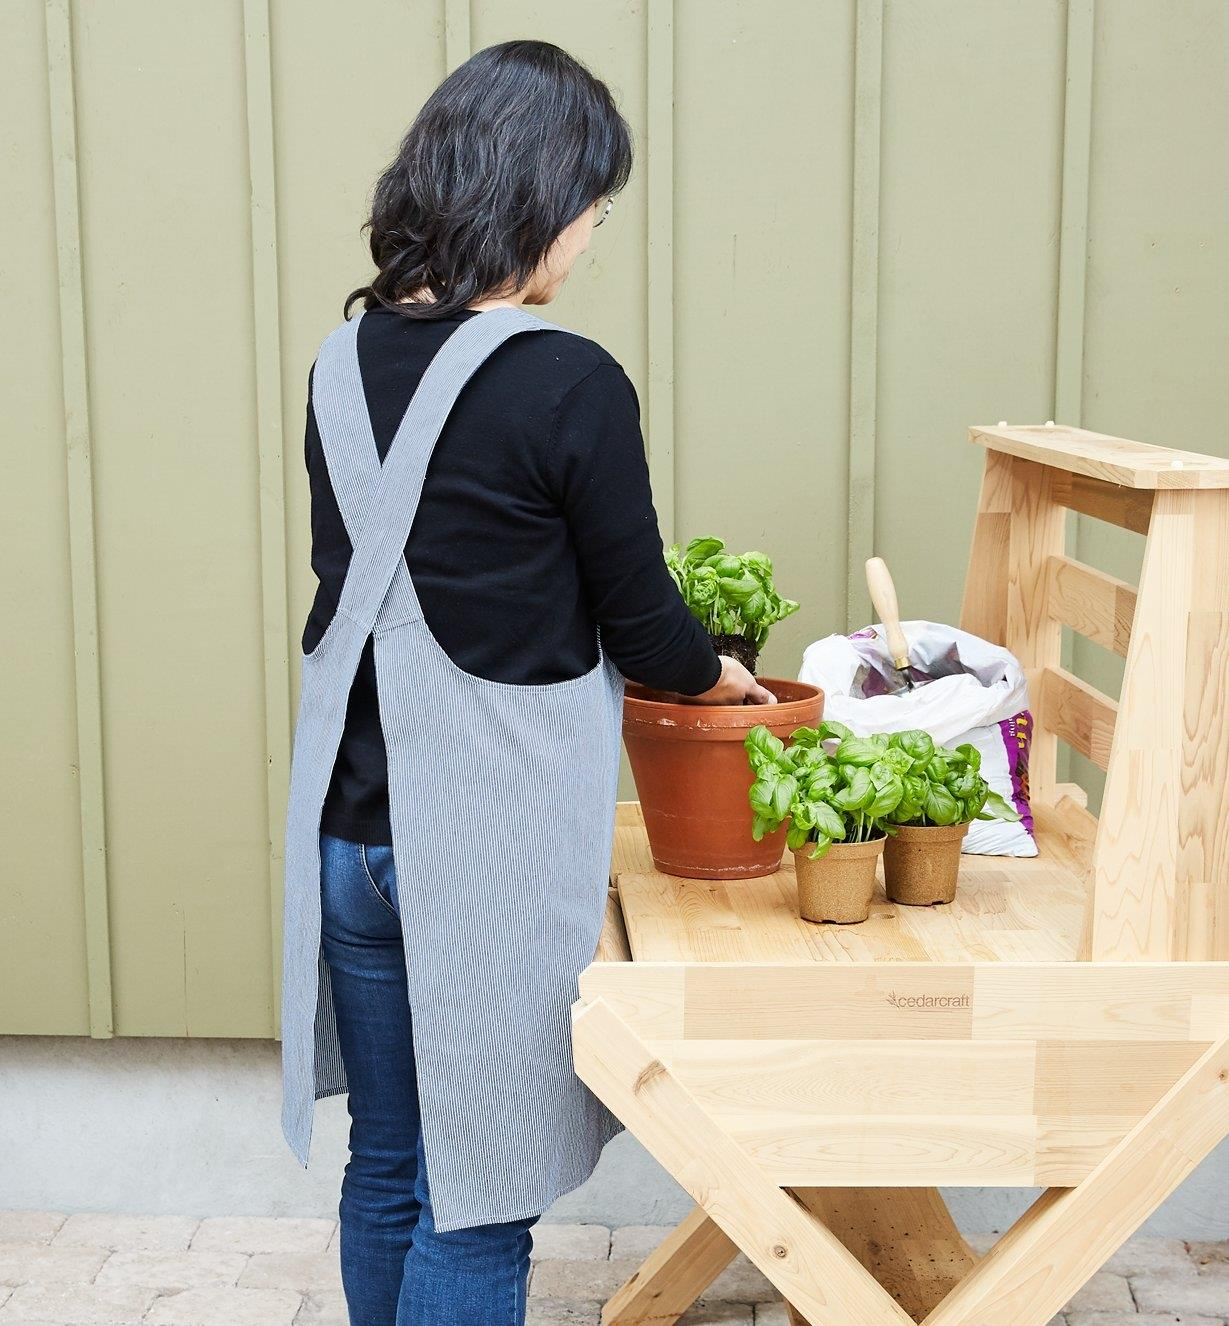 A woman wears a Cross-Back Apron while potting plants on a potting bench